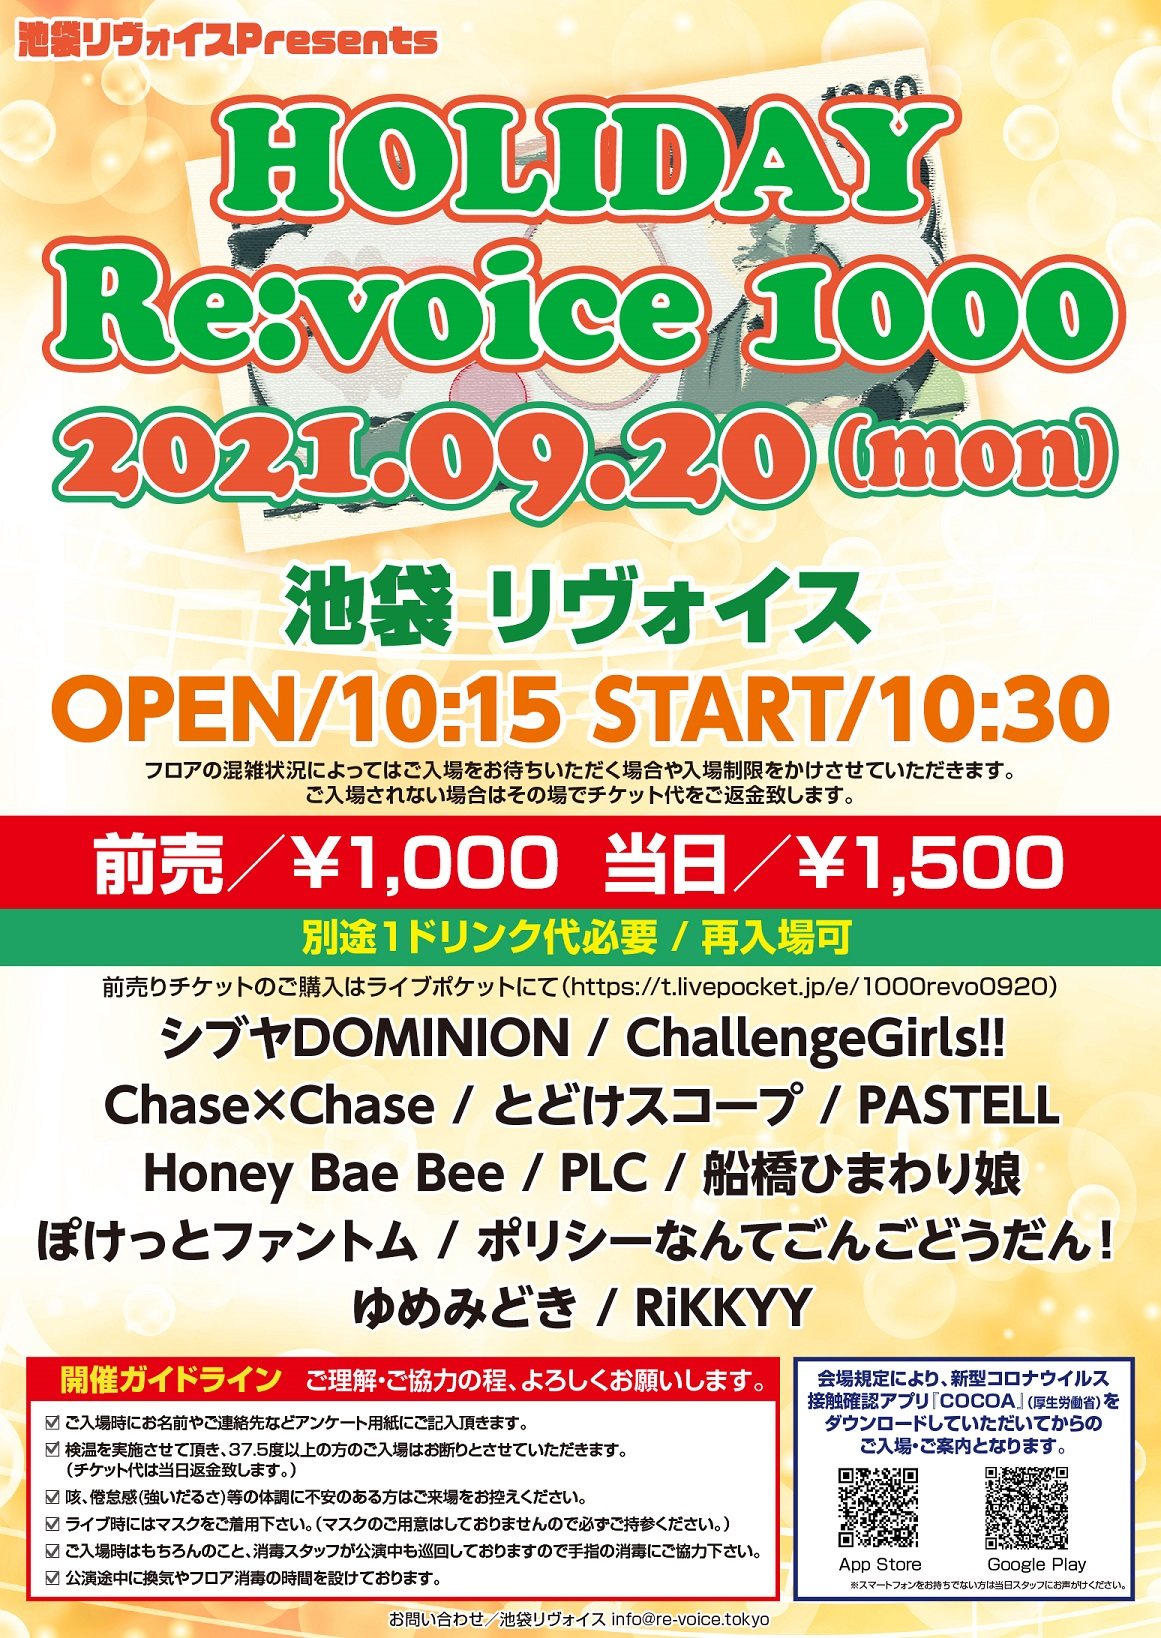 HOLIDAY Re:voice 1000